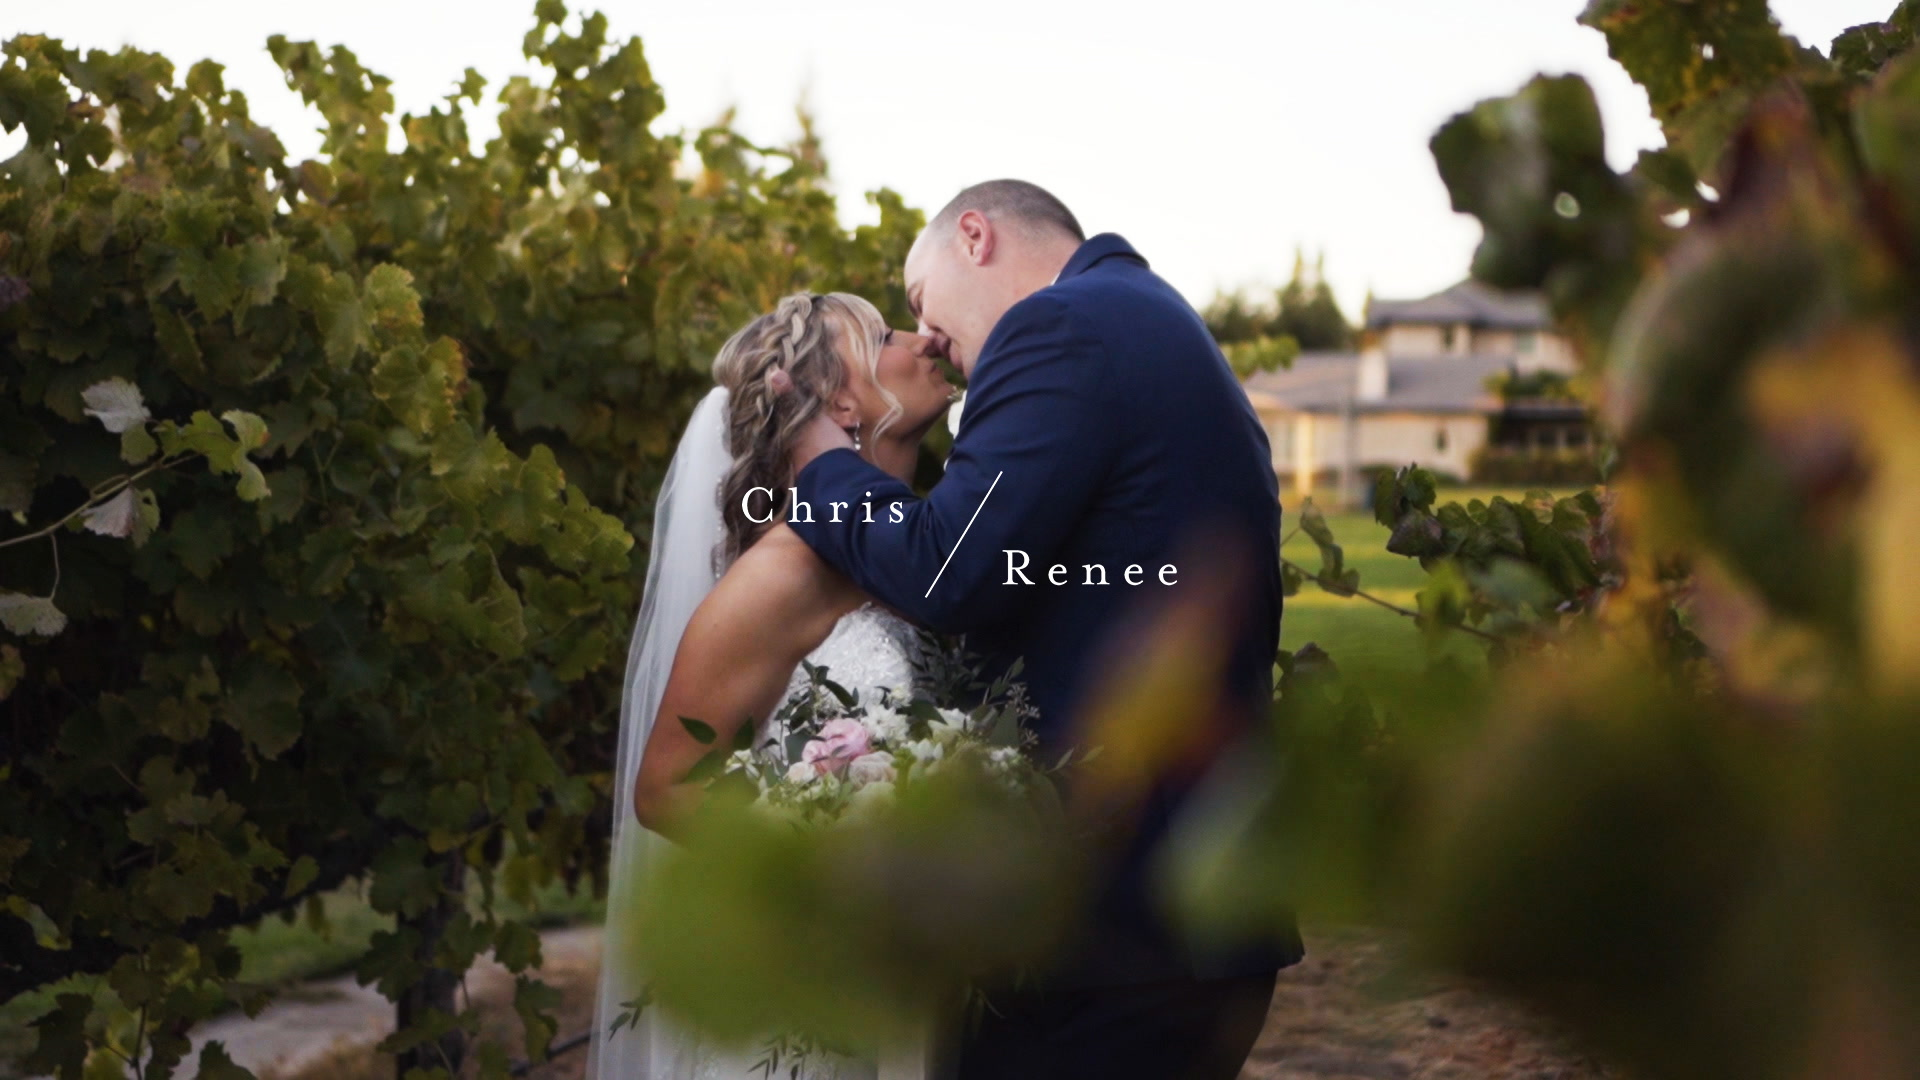 Chris + Renee | Lodi, California | wine and roses hotel